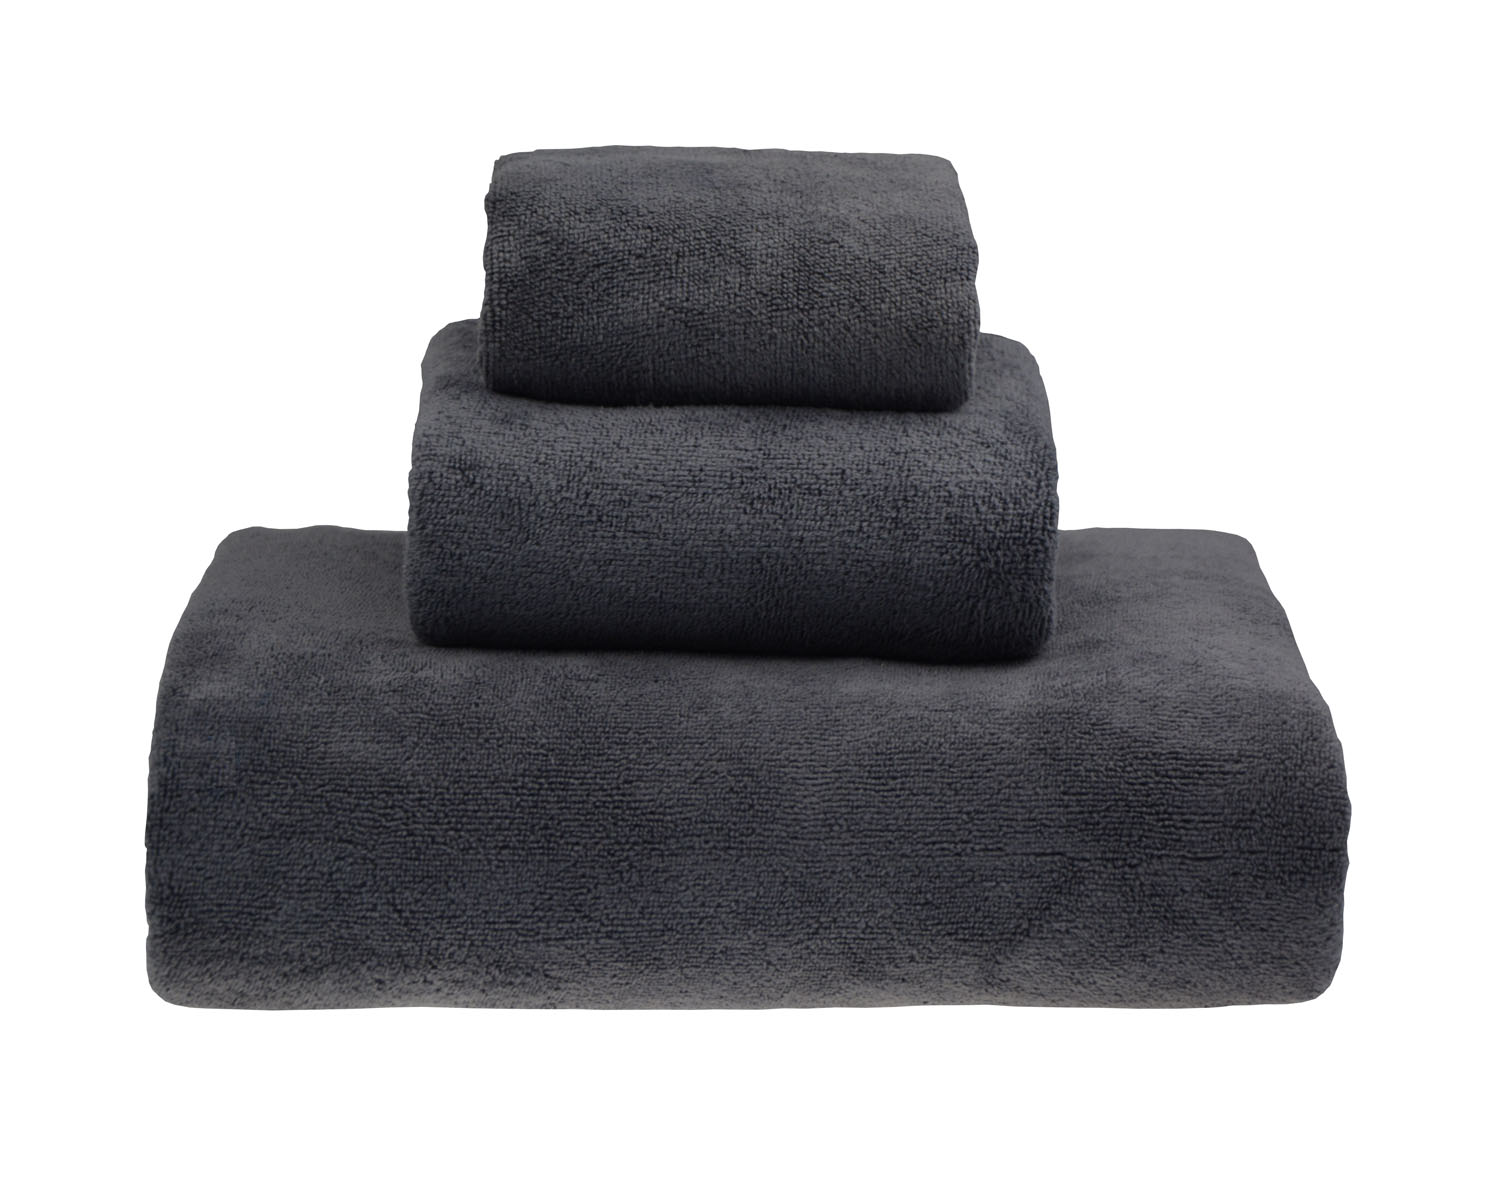 HOPESHINE Microfiber Extra Large Bath Towel Set 3 Piece Bath Towel (Grey)